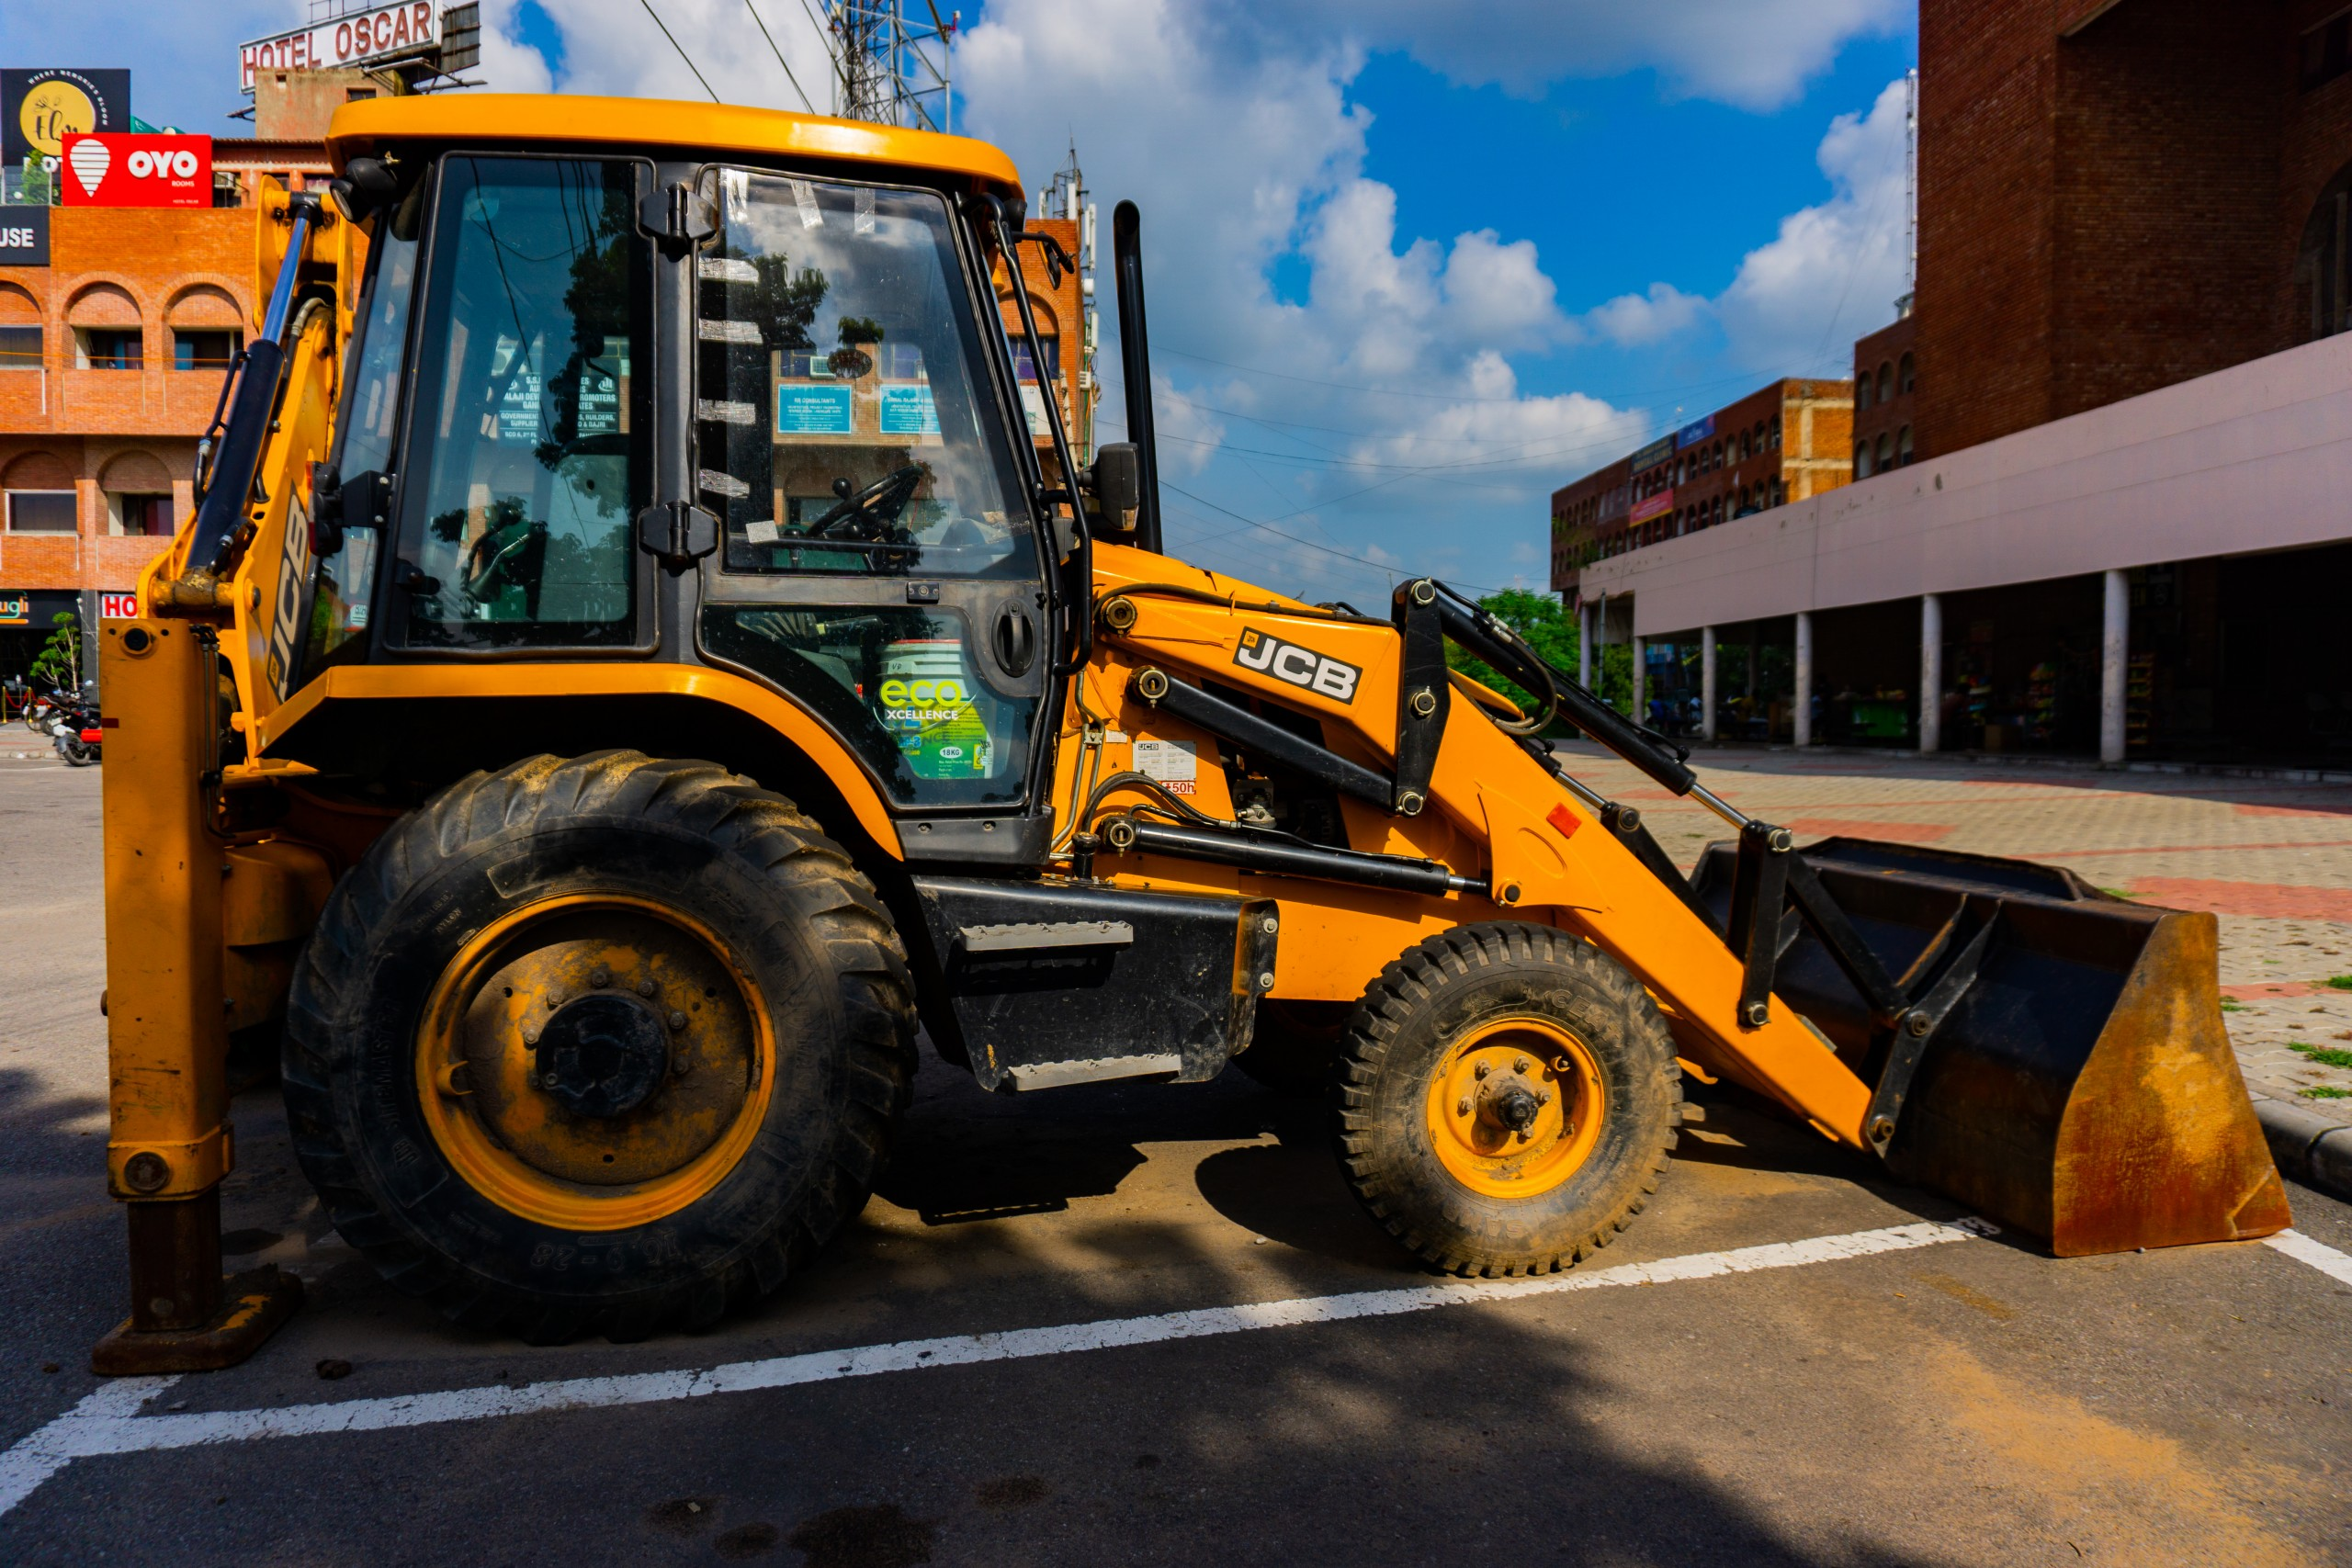 Heavy equipment on a parking lot